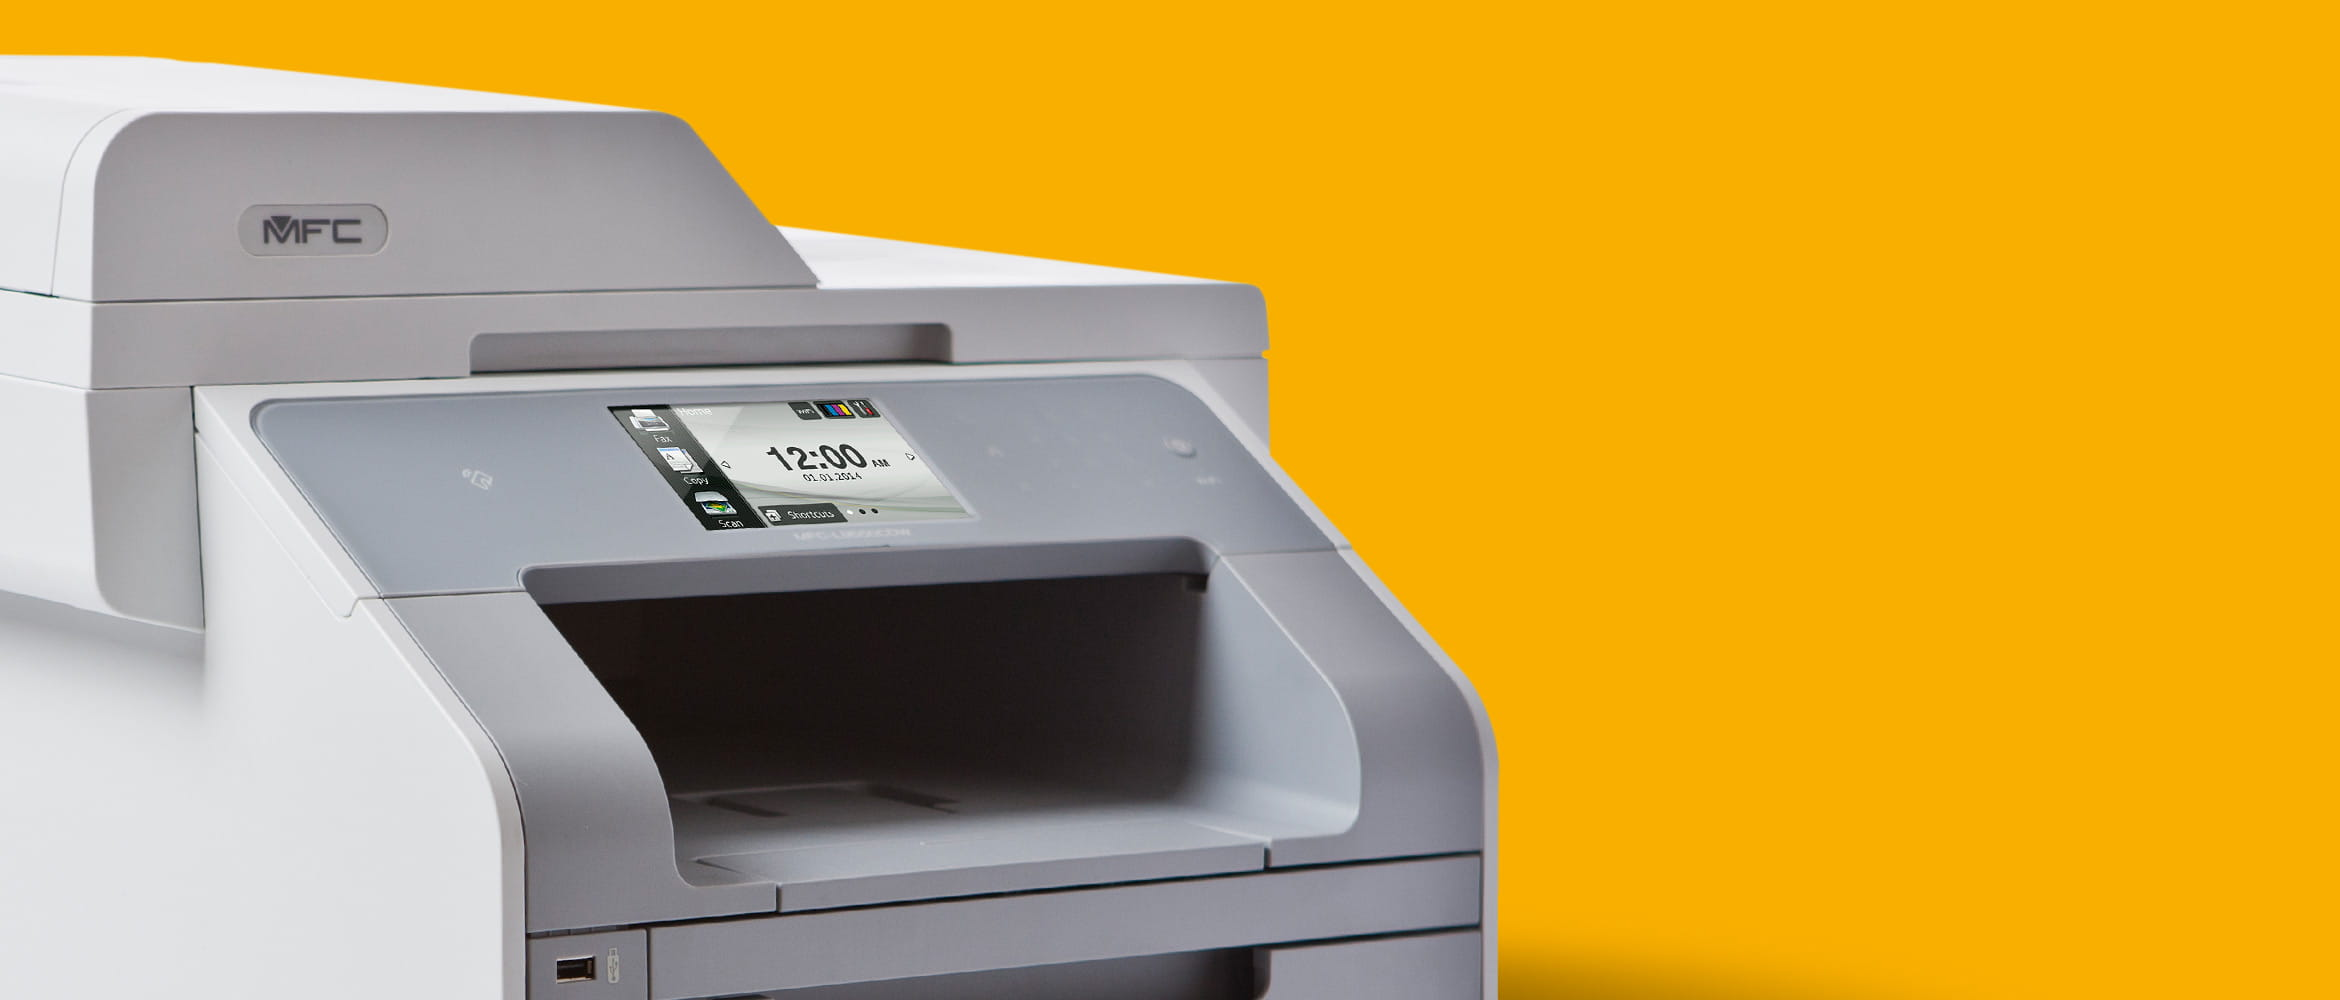 Genuine Brother Colour Laser Printer on yellow background